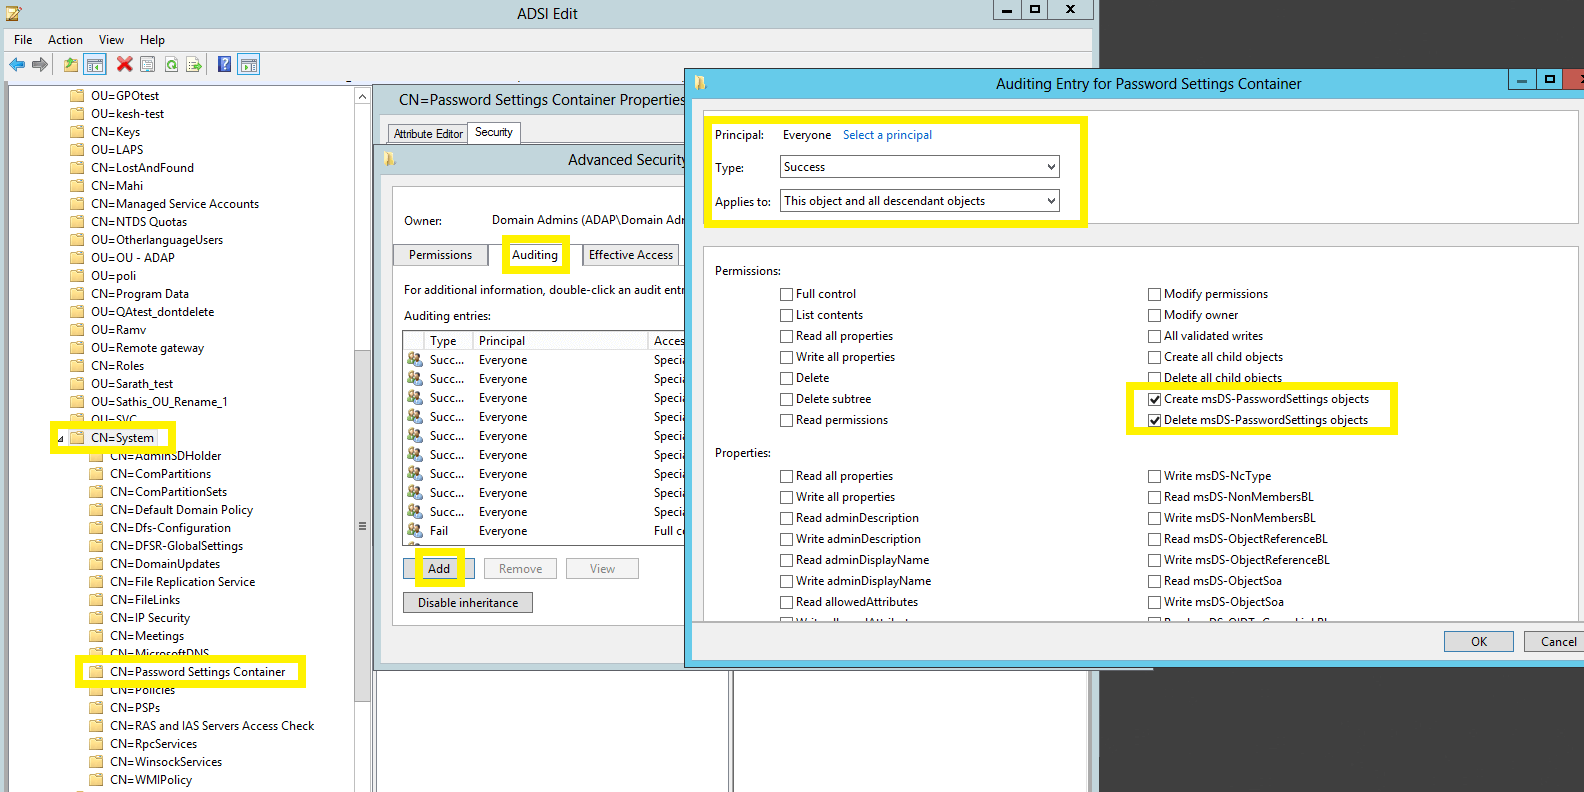 active-directory-audit-configuring-auditing-for-password-setting-objects